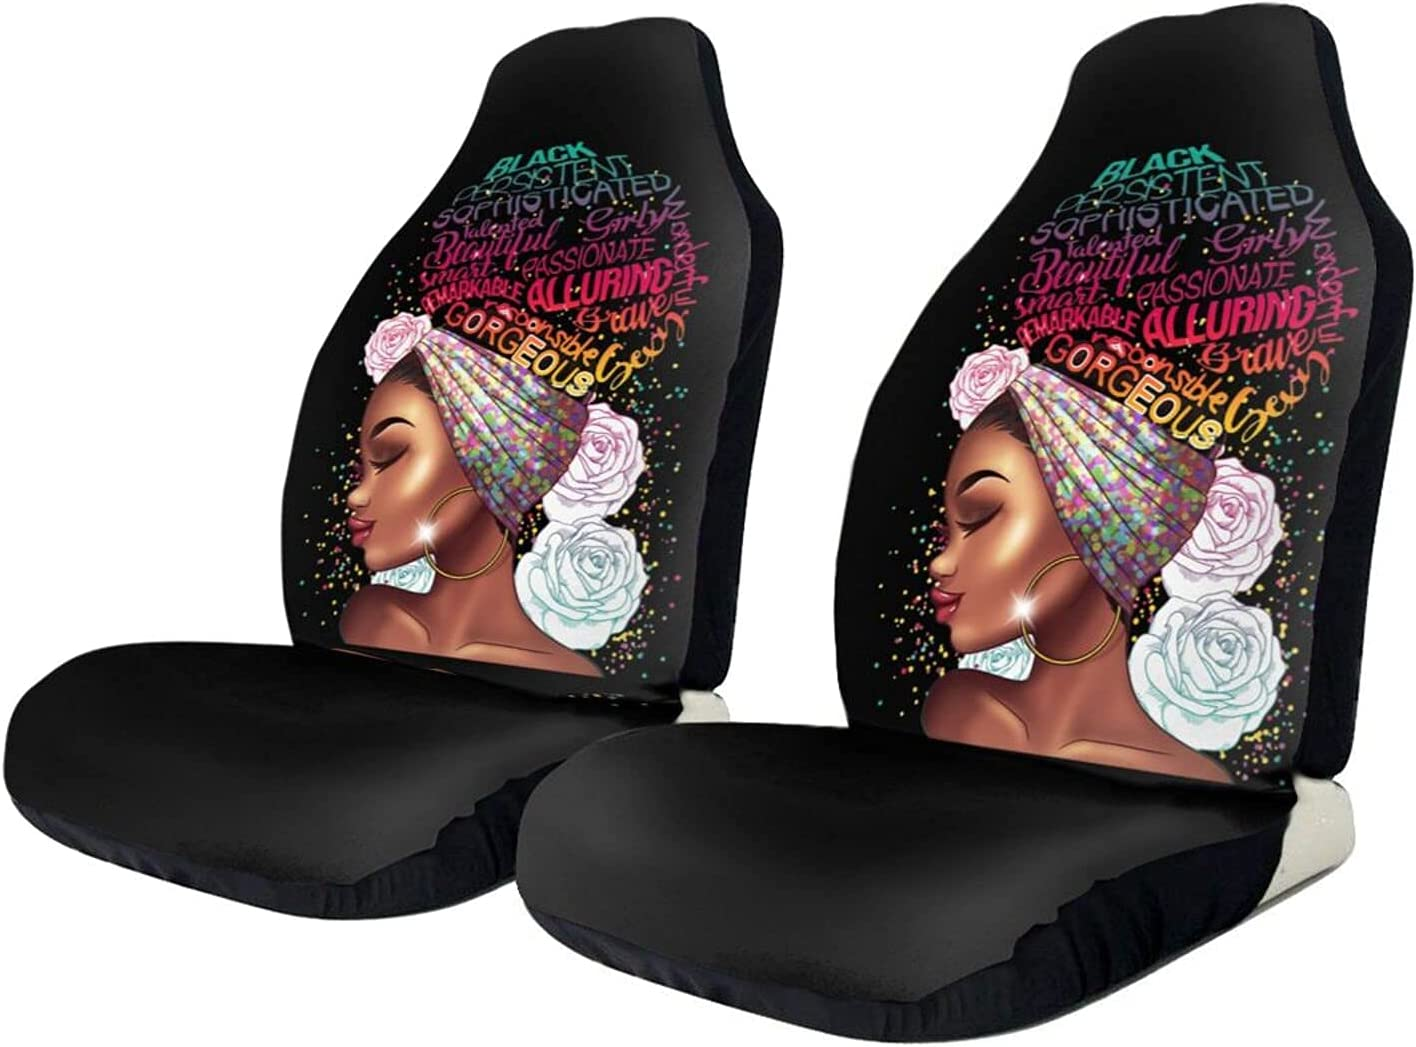 ZHUBAJIE 2 Same day shipping PCS Car Seat Covers Black Magic SEAL limited product Chic Hair F Girl with